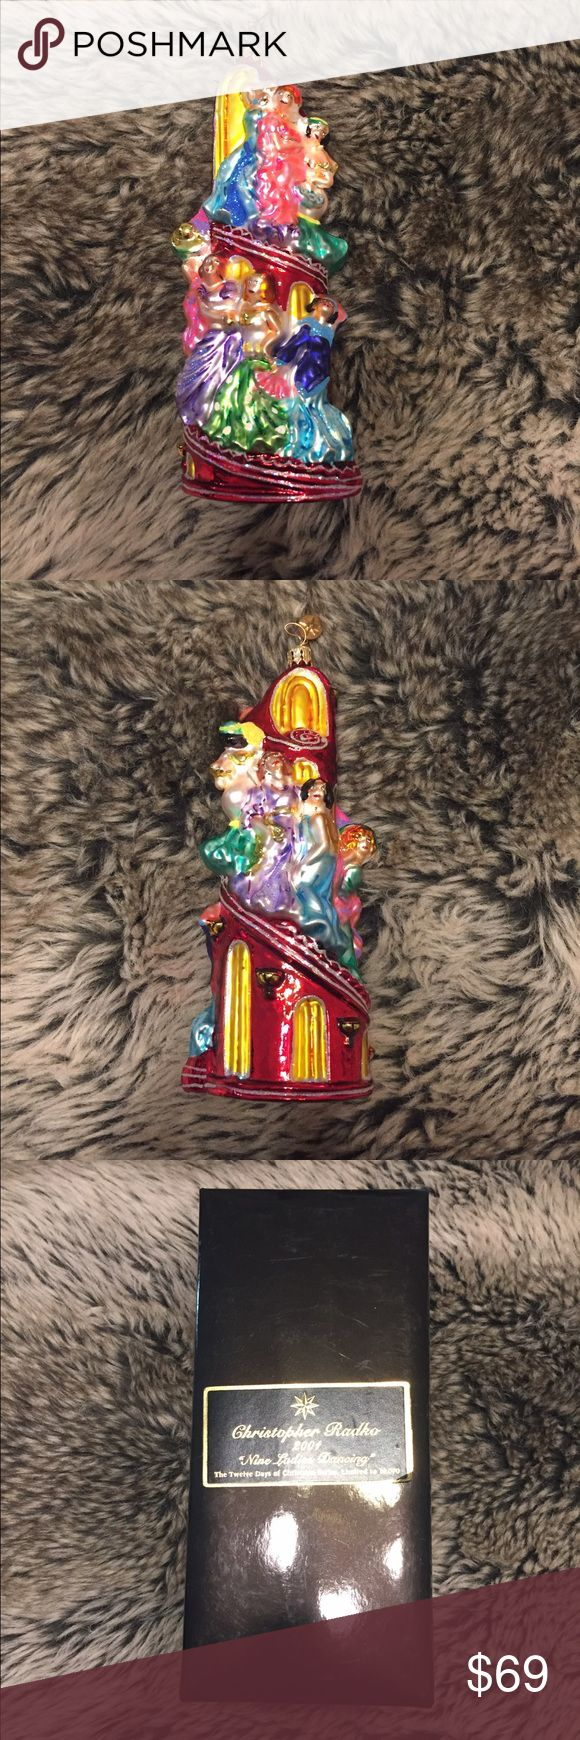 🎄Christopher Radko Ornament 9 Ladies Dancing 💃🏽 🎅🏼🤶🏼 Limited Edition Christmas Ornament. Excellent condition. I recommend using clear glue on the hangar to avoid accidents. Thank you!! 💕🎄 Christopher Radko Accessories